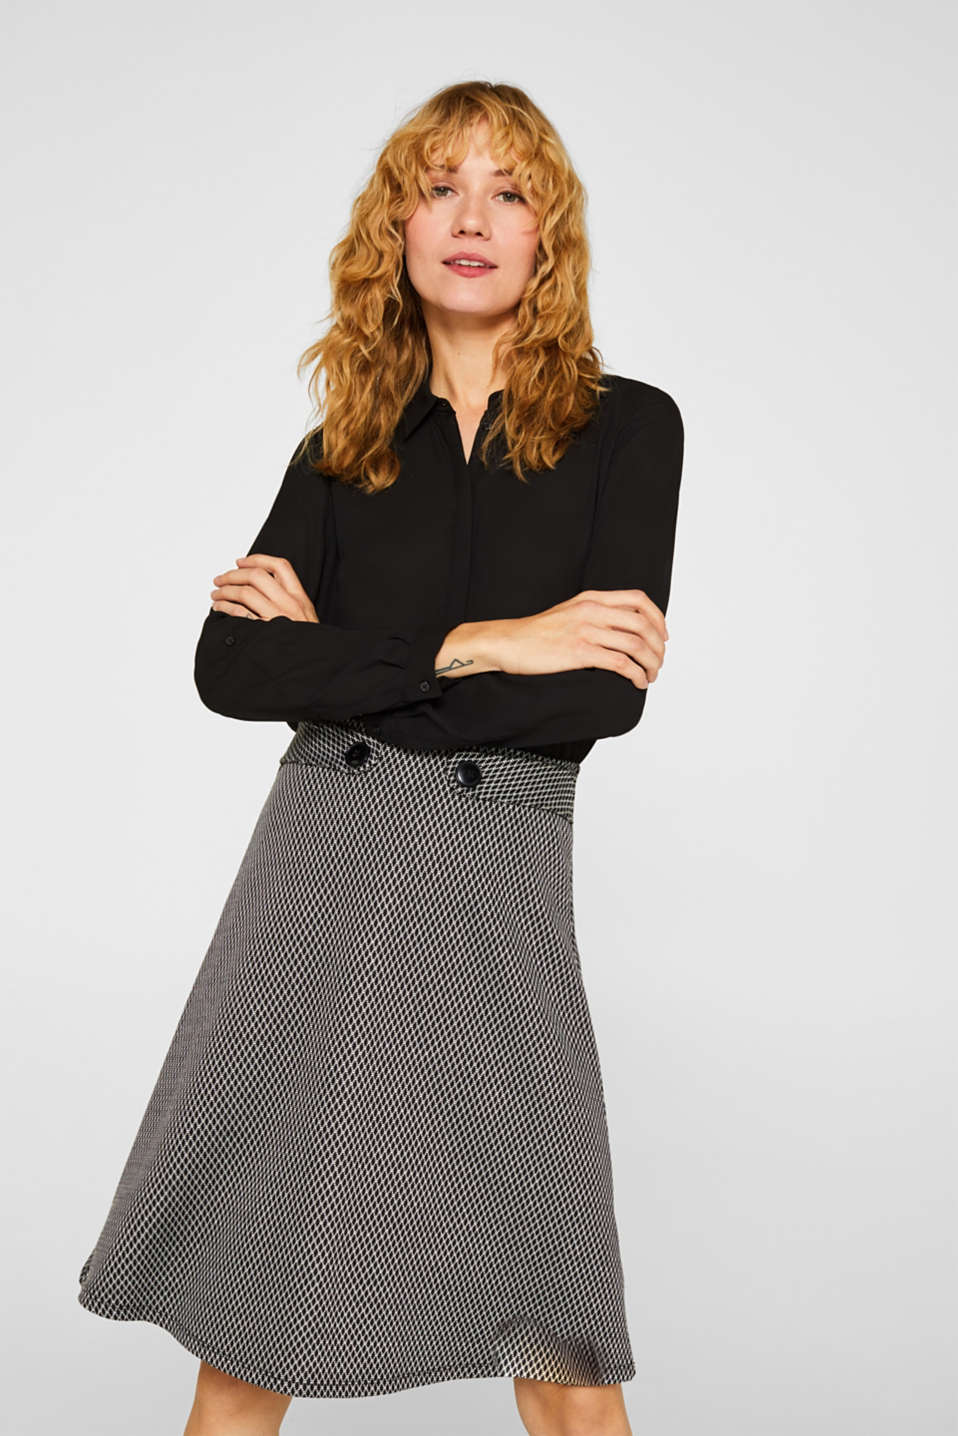 Esprit - A-line skirt made of patterned jersey